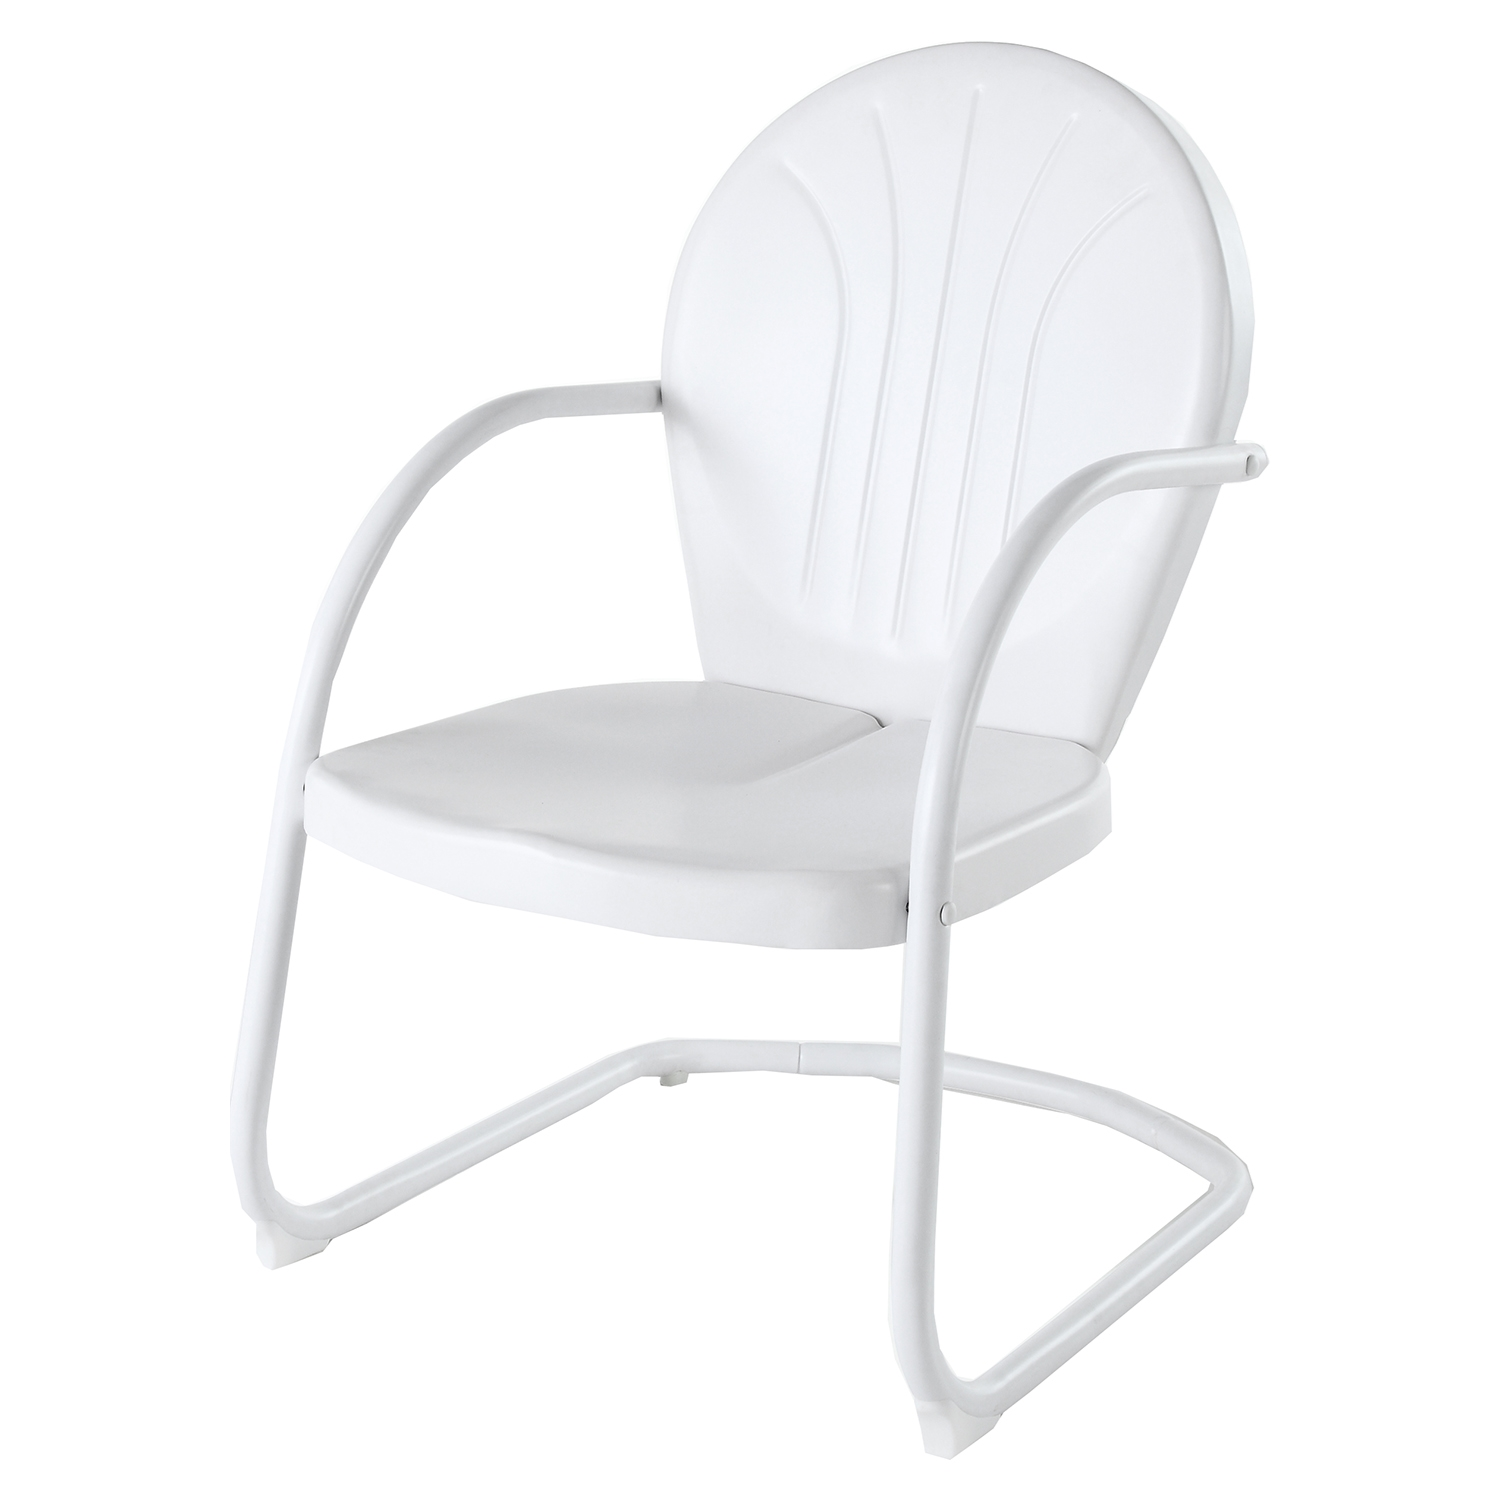 Griffith Metal Chair - White - CROS-CO1001A-WH